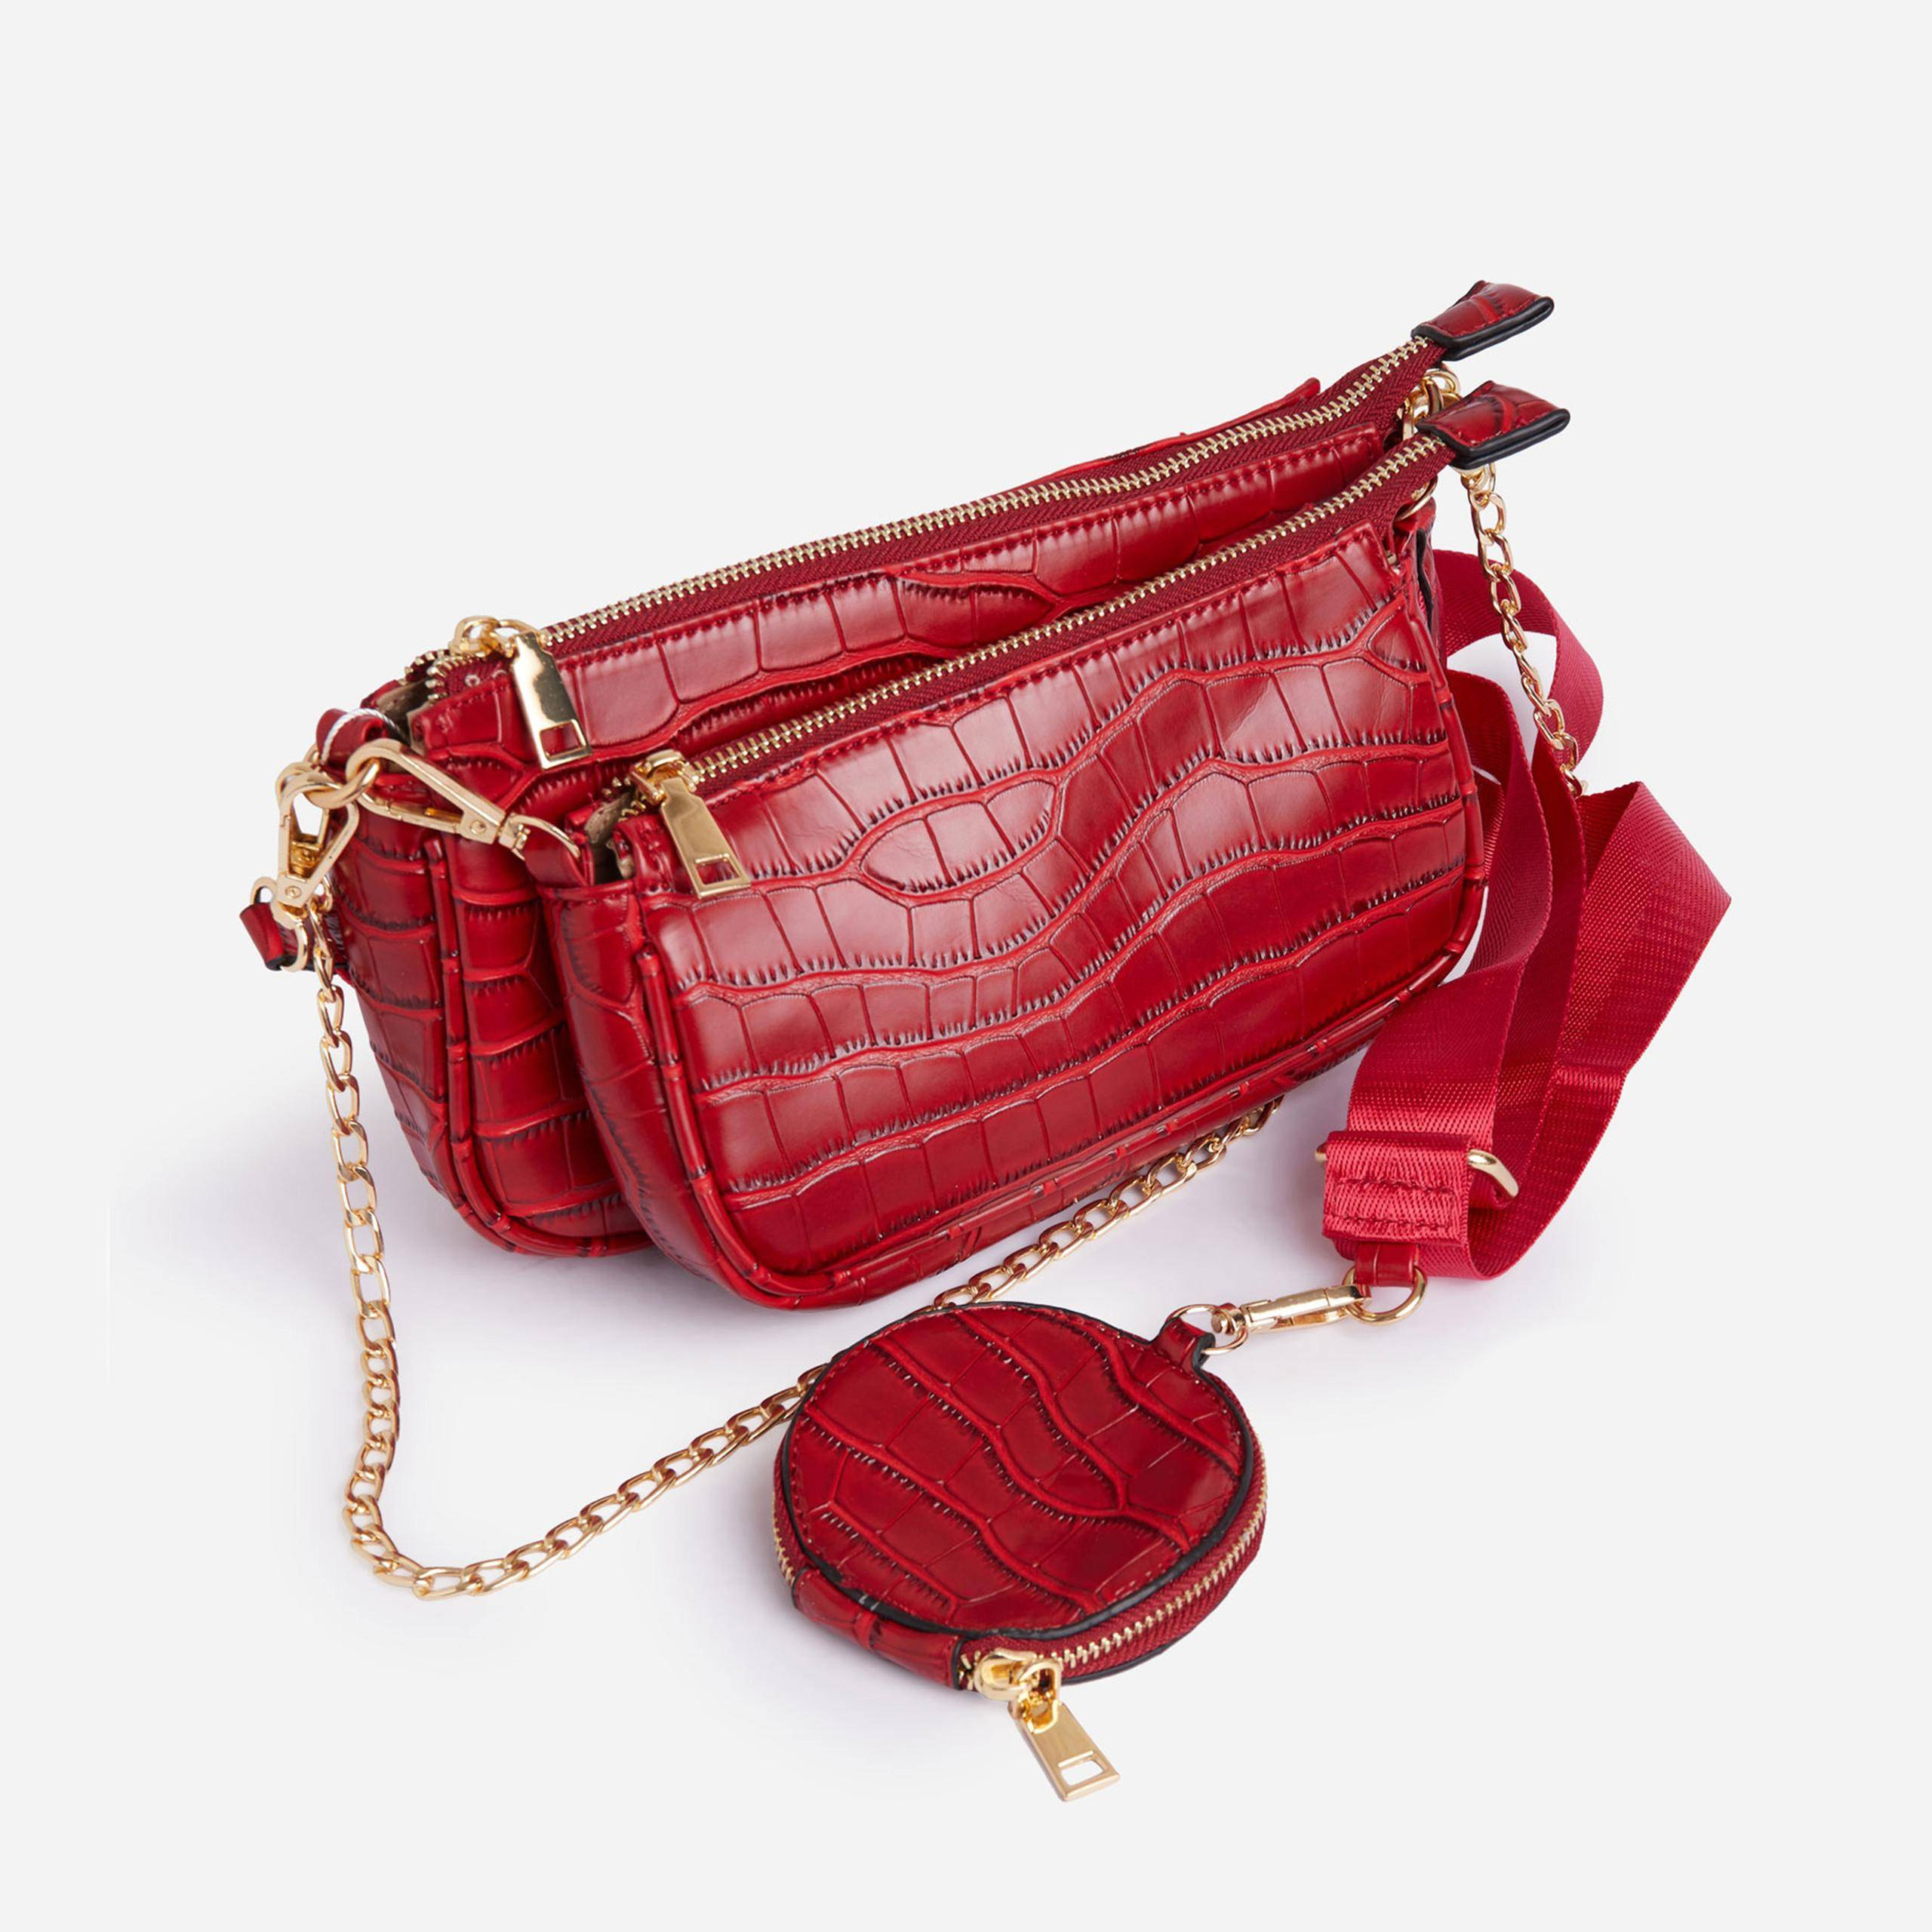 EGO Mika Chain And Purse Detail Cross Body Bag In Red Croc Print Patent,, Red  - female - Size: One Size